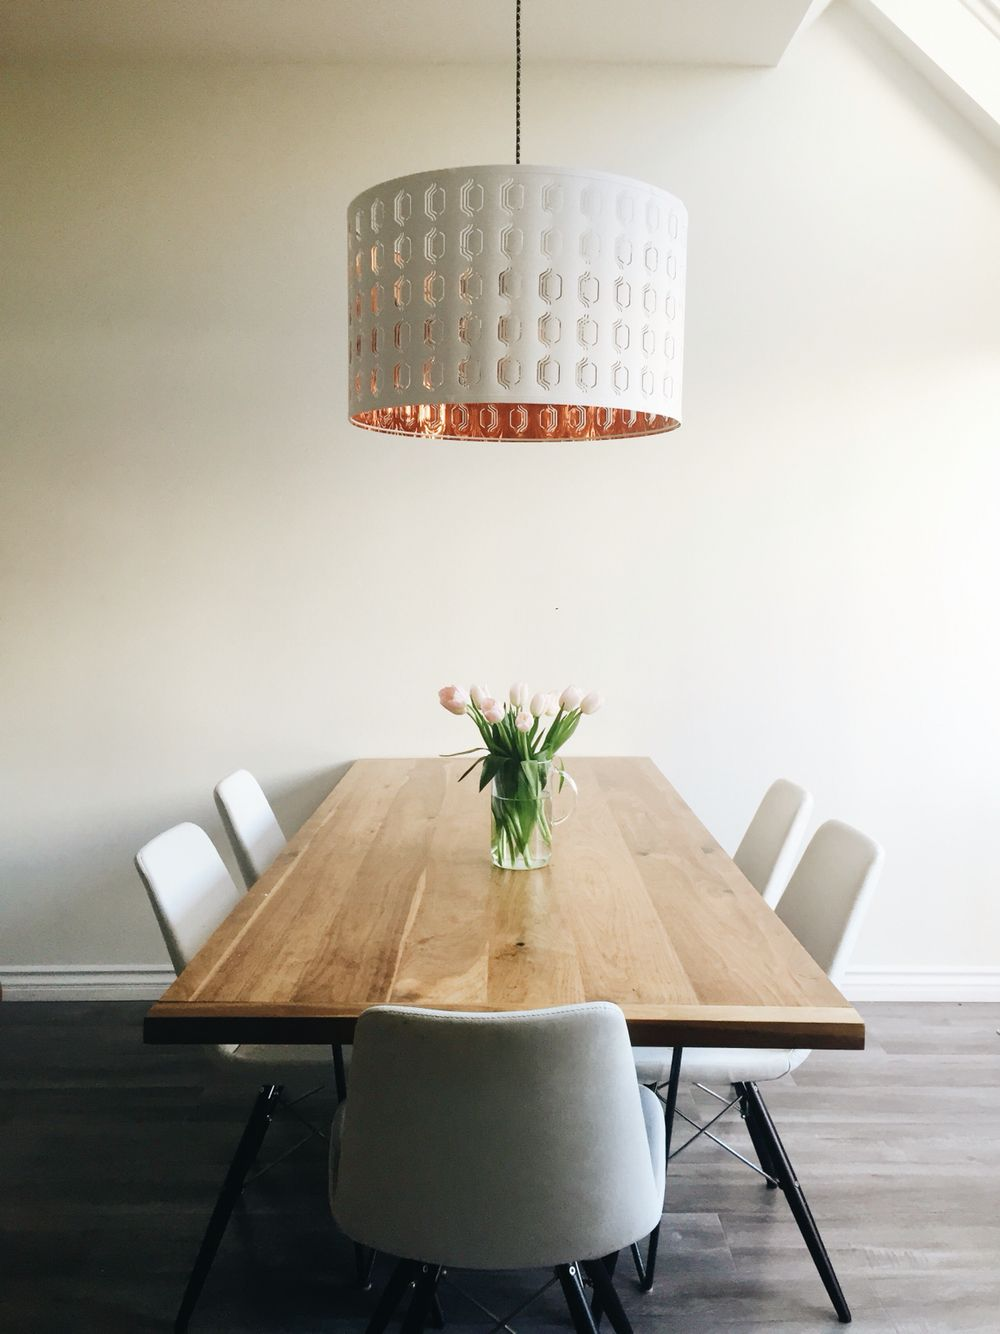 Minimalist Dining Room With Ikea Pendant Light In Copper